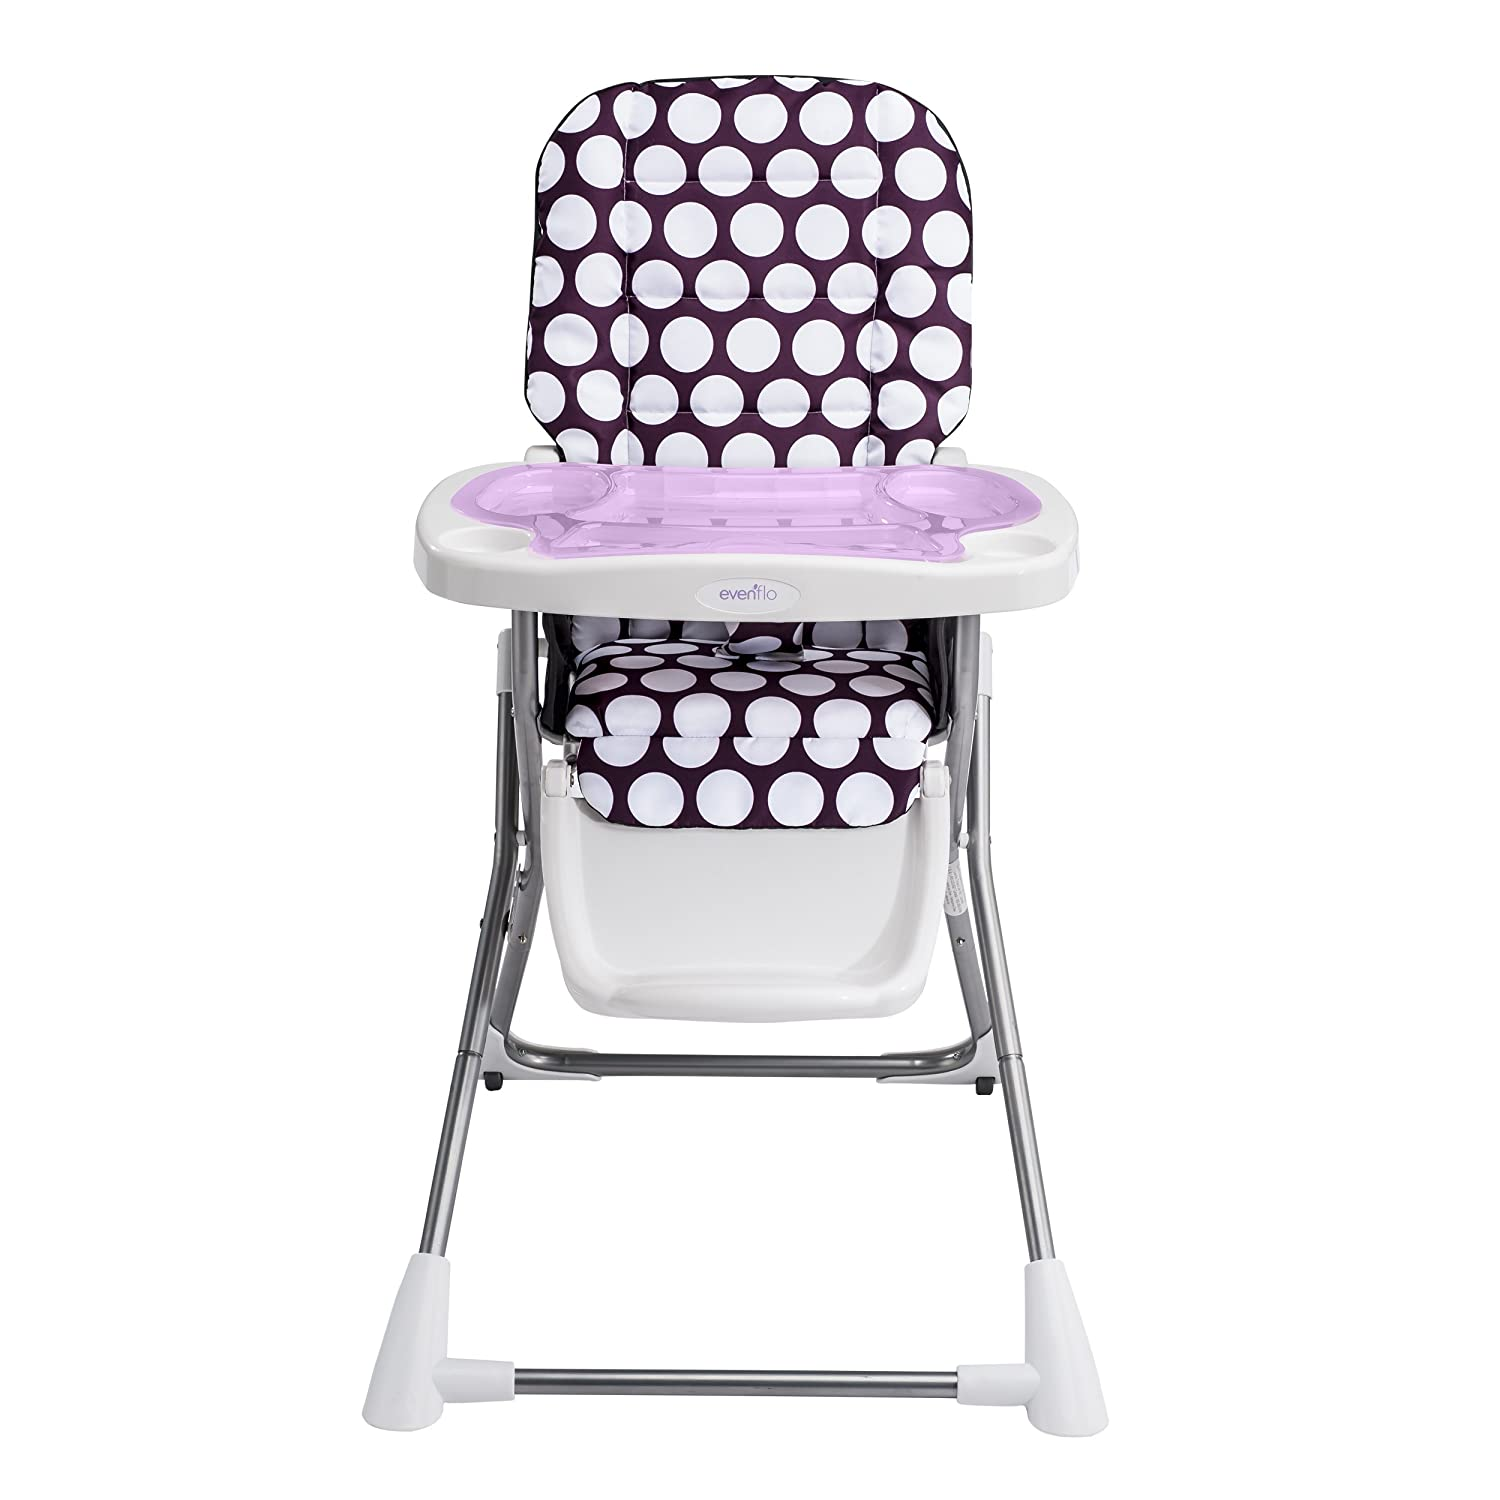 evenflo modern 200 high chair steelcase leap chairs top rated for babies 2015